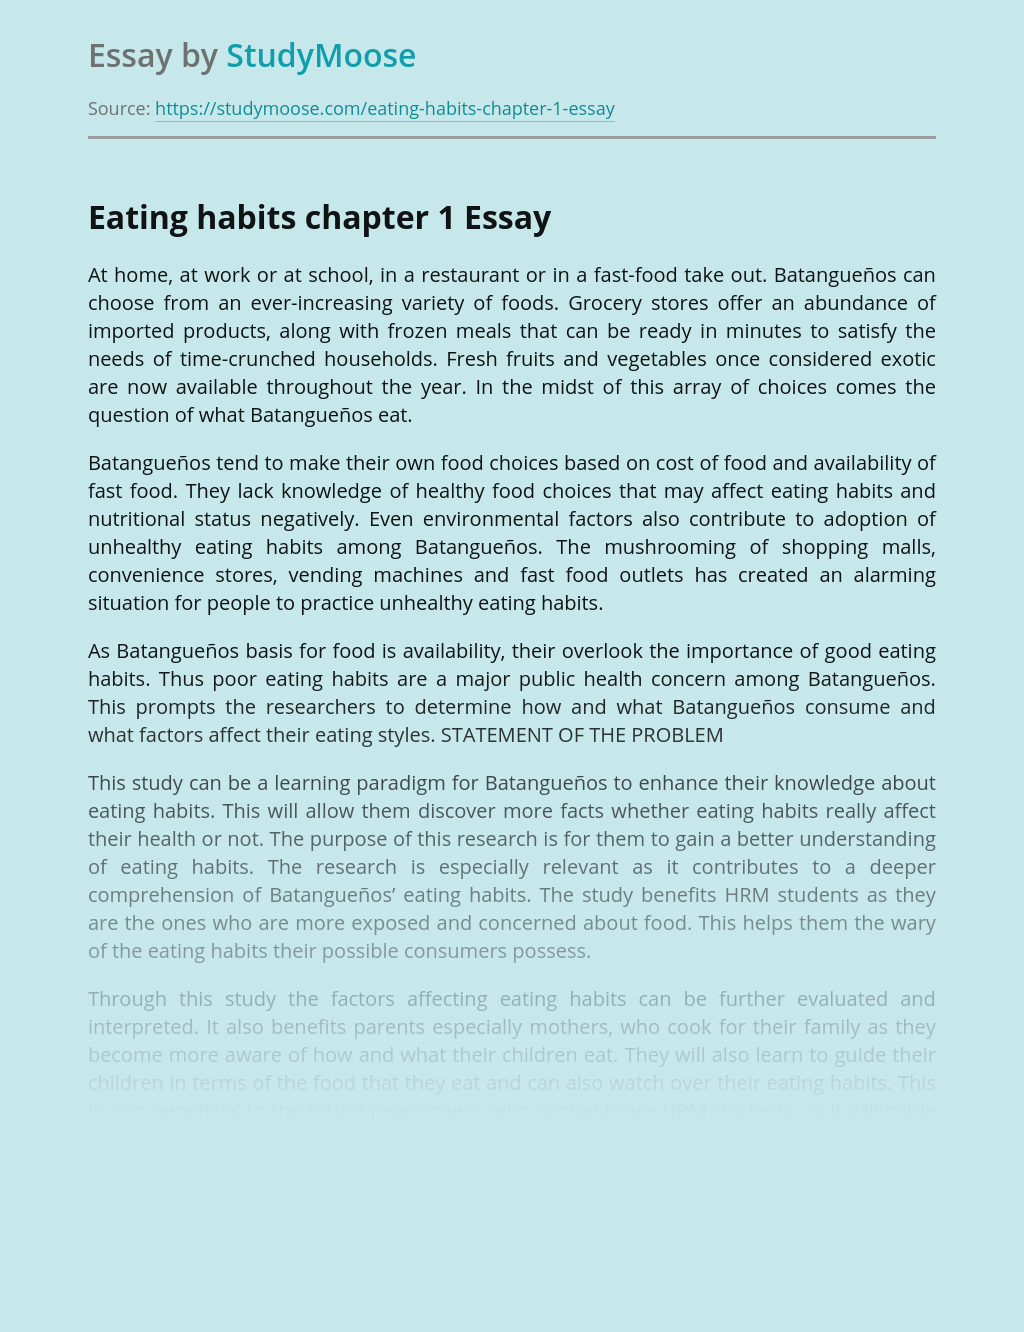 Eating Habits Chapter 1